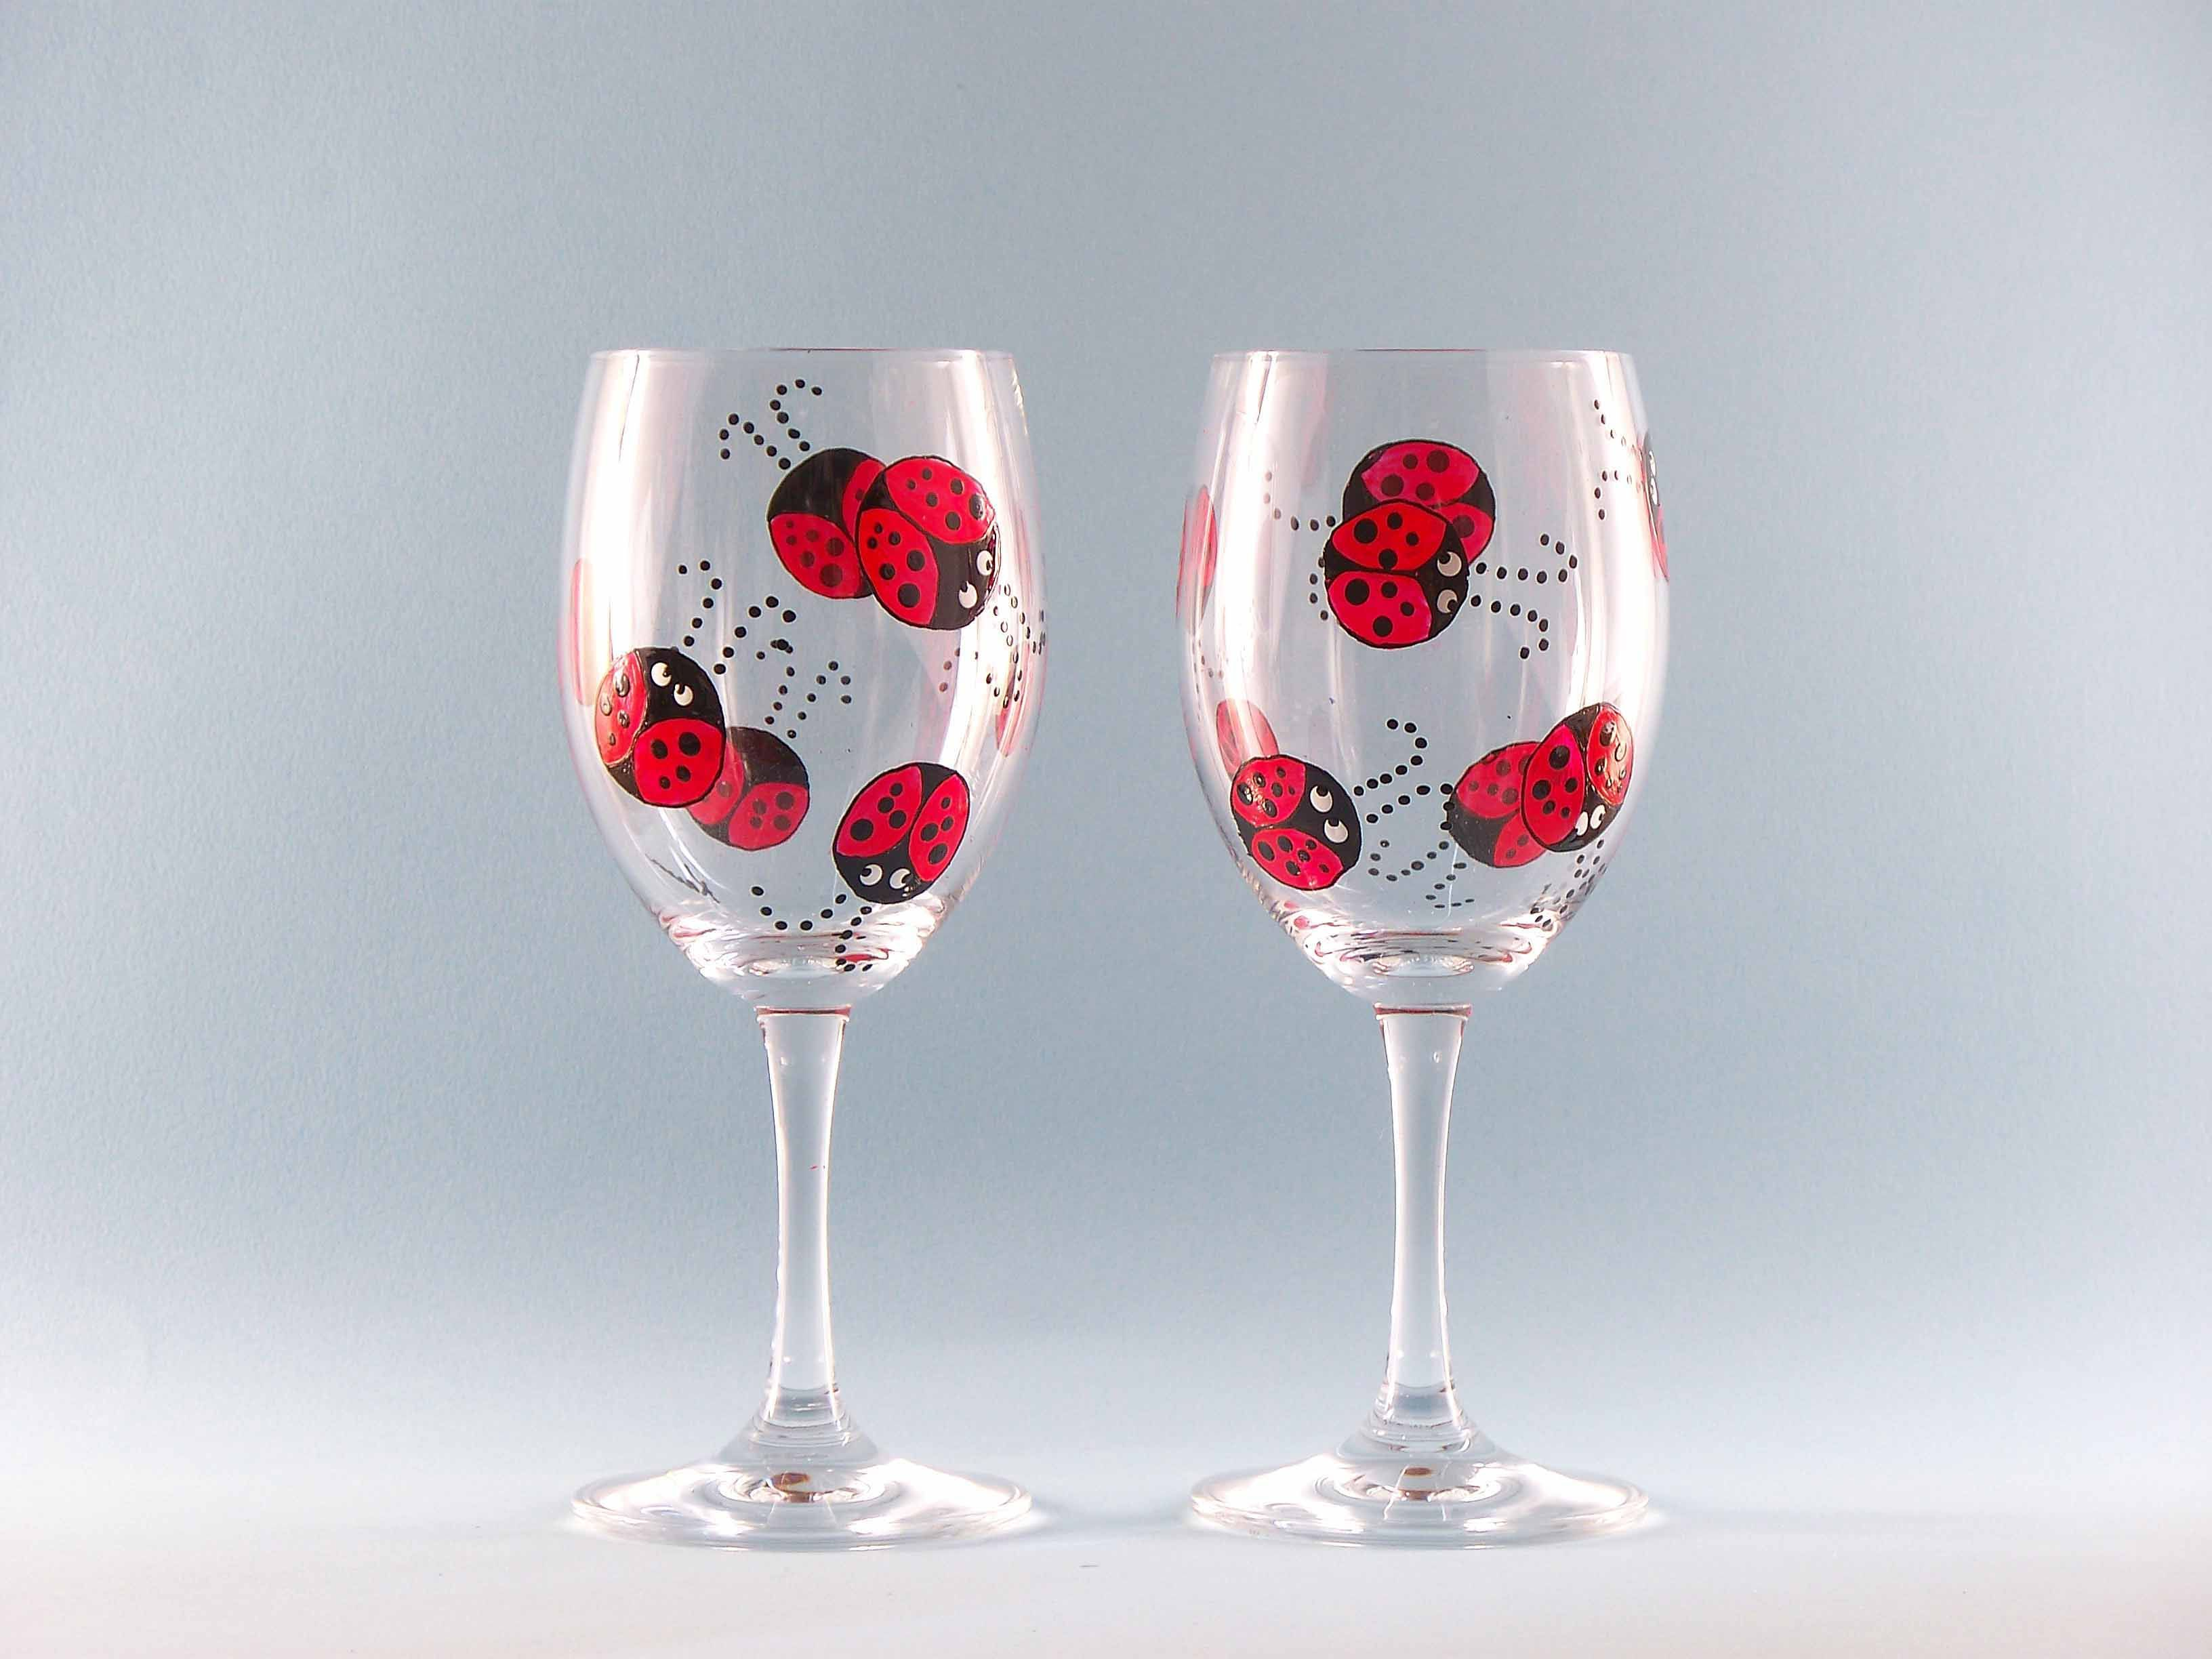 ladybug wine glasses - Wine Glass Design Ideas